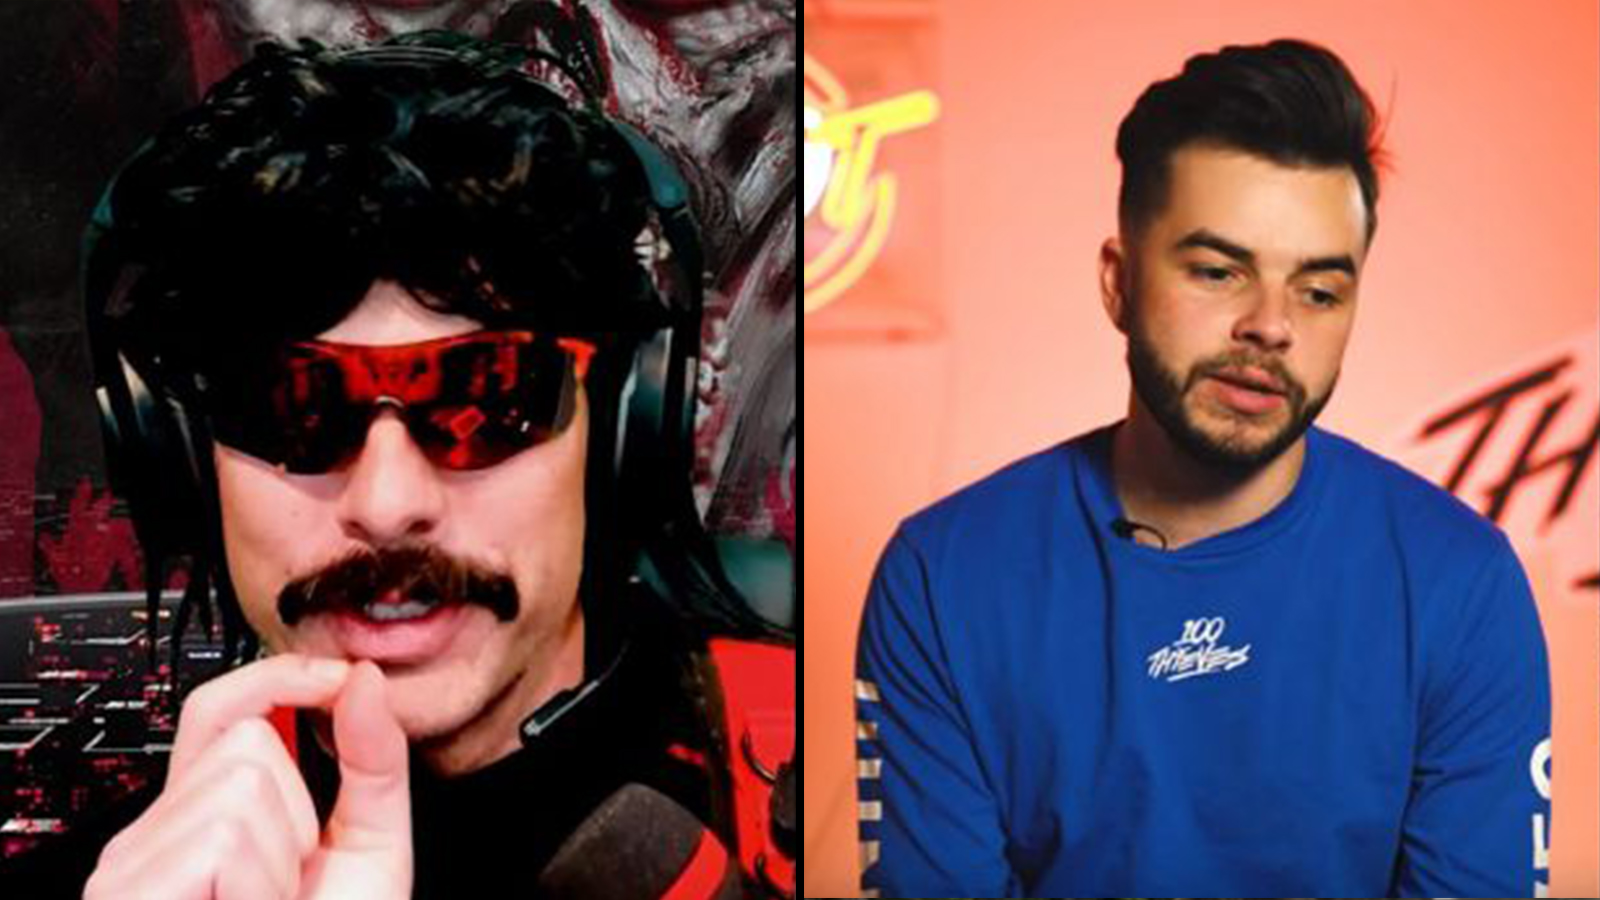 Twitch: Dr Disrespect / Nadeshot